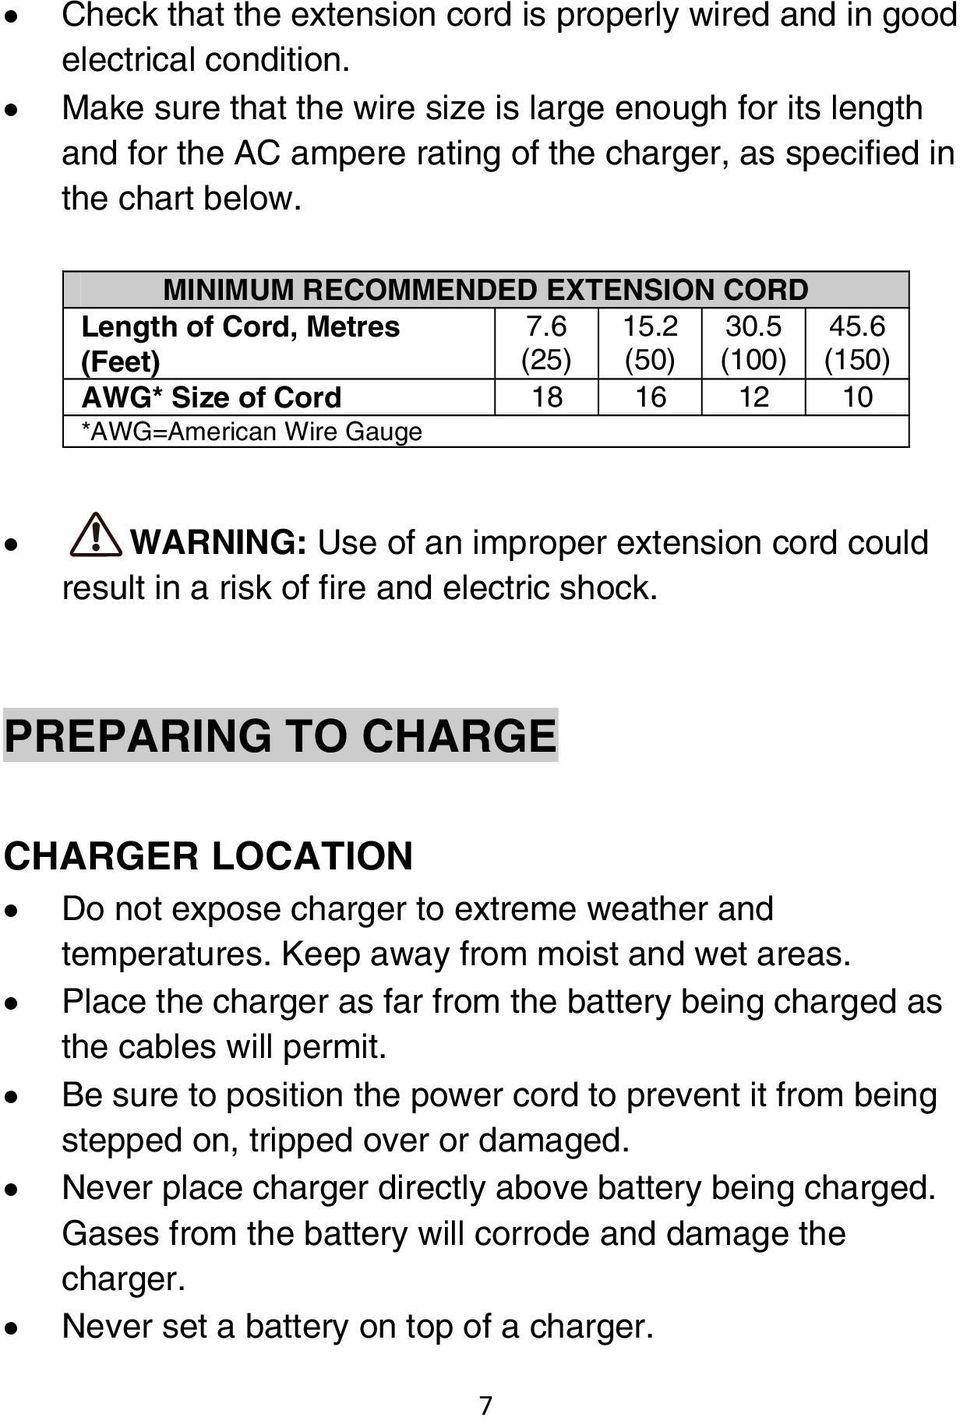 2 8 12 Amp Smart Charger Owner S Manual Pdf Net American Wire Gauge 5 Minimum Recommended Extension Cord Length Of Metres Feet 76 25